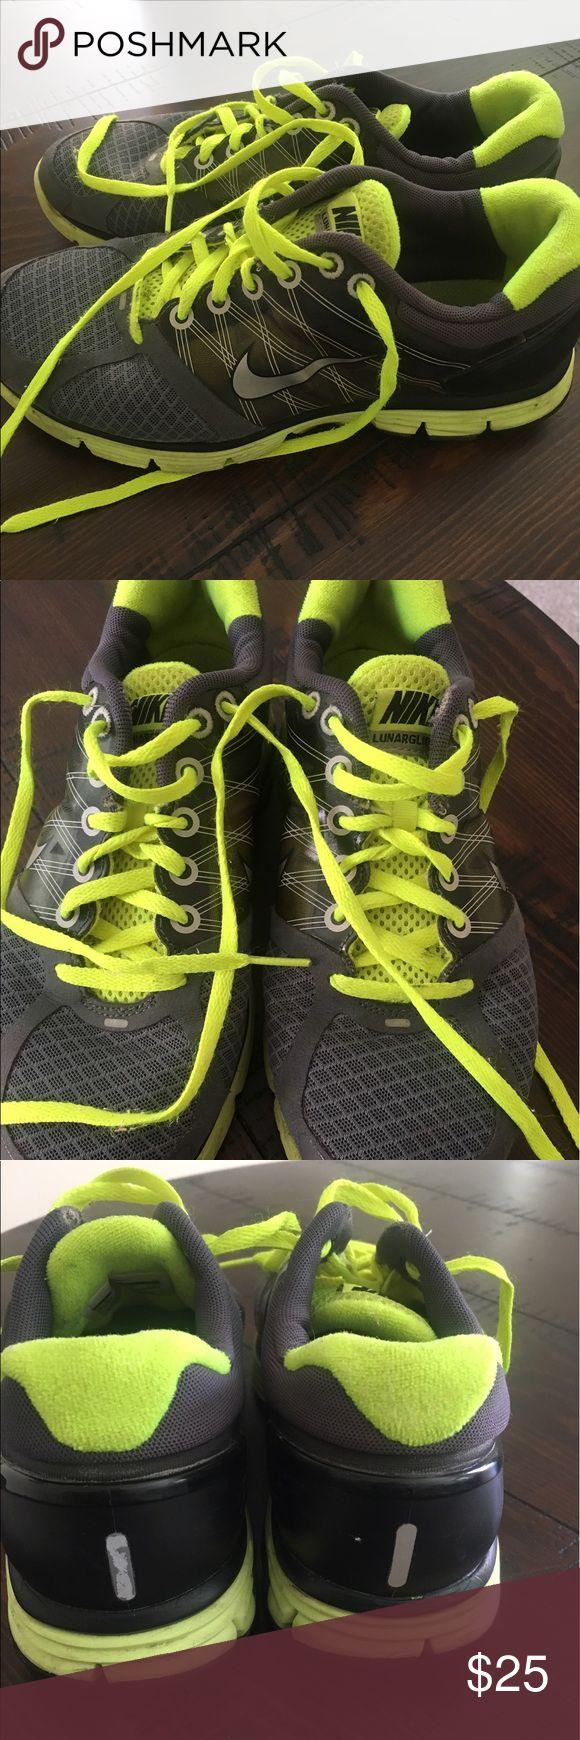 Nike LUNARGLIDE 2 Tennis Shoes (Youth/Women's) These Nike tennis shoes are grey and lime green. They are a youth 5 1/2 which is the same as a women's 7 1/2. They have been worn so have some wear to them but overall good condition. They smell fresh and look clean from the outside. Nike Shoes Athletic Shoes